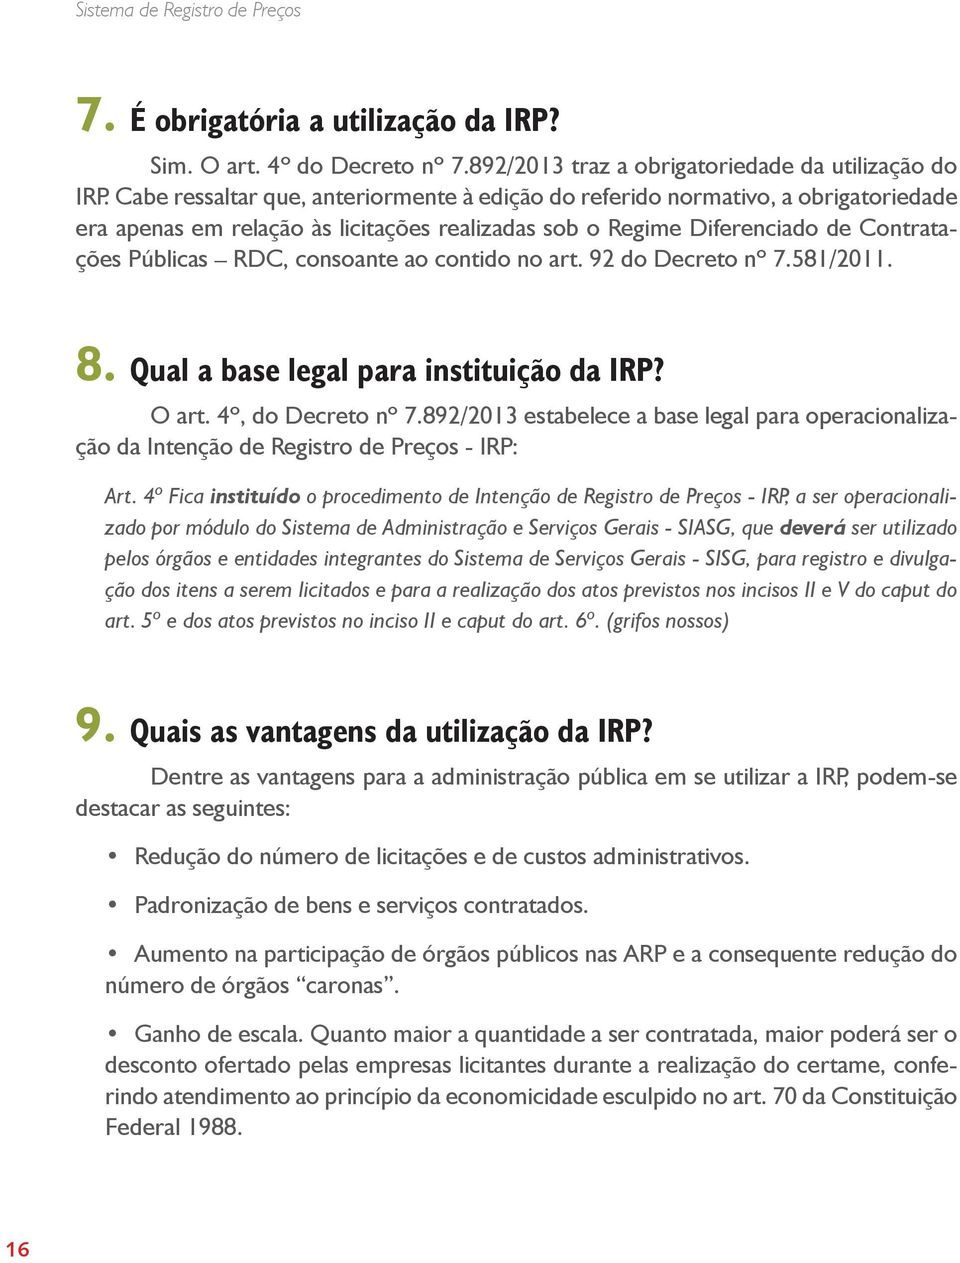 contido no art. 92 do Decreto nº 7.581/2011. 8. Qual a base legal para instituição da IRP? O art. 4º, do Decreto nº 7.